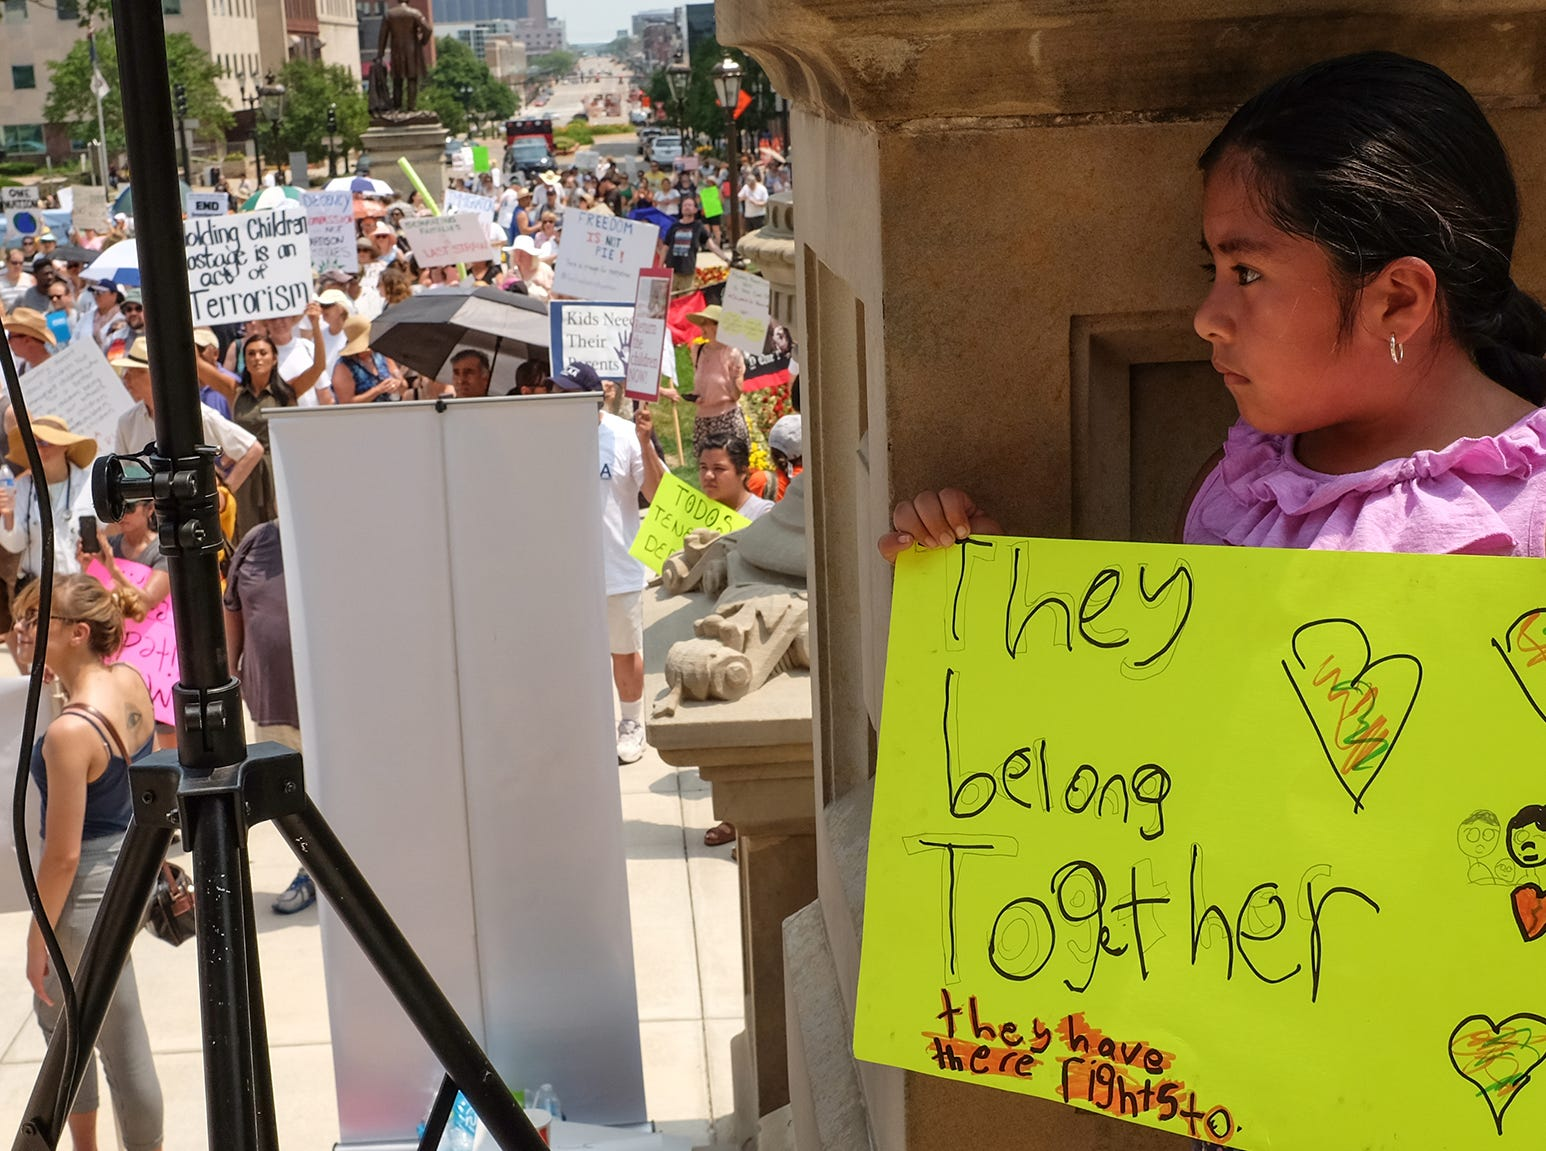 Camila Garcia, 7, from Lansing, peeks out at the crowd of over a thousand people at a Families Belong Together rally at the state Capitol in Lansing, Michigan on Saturday, June 30, 2018.